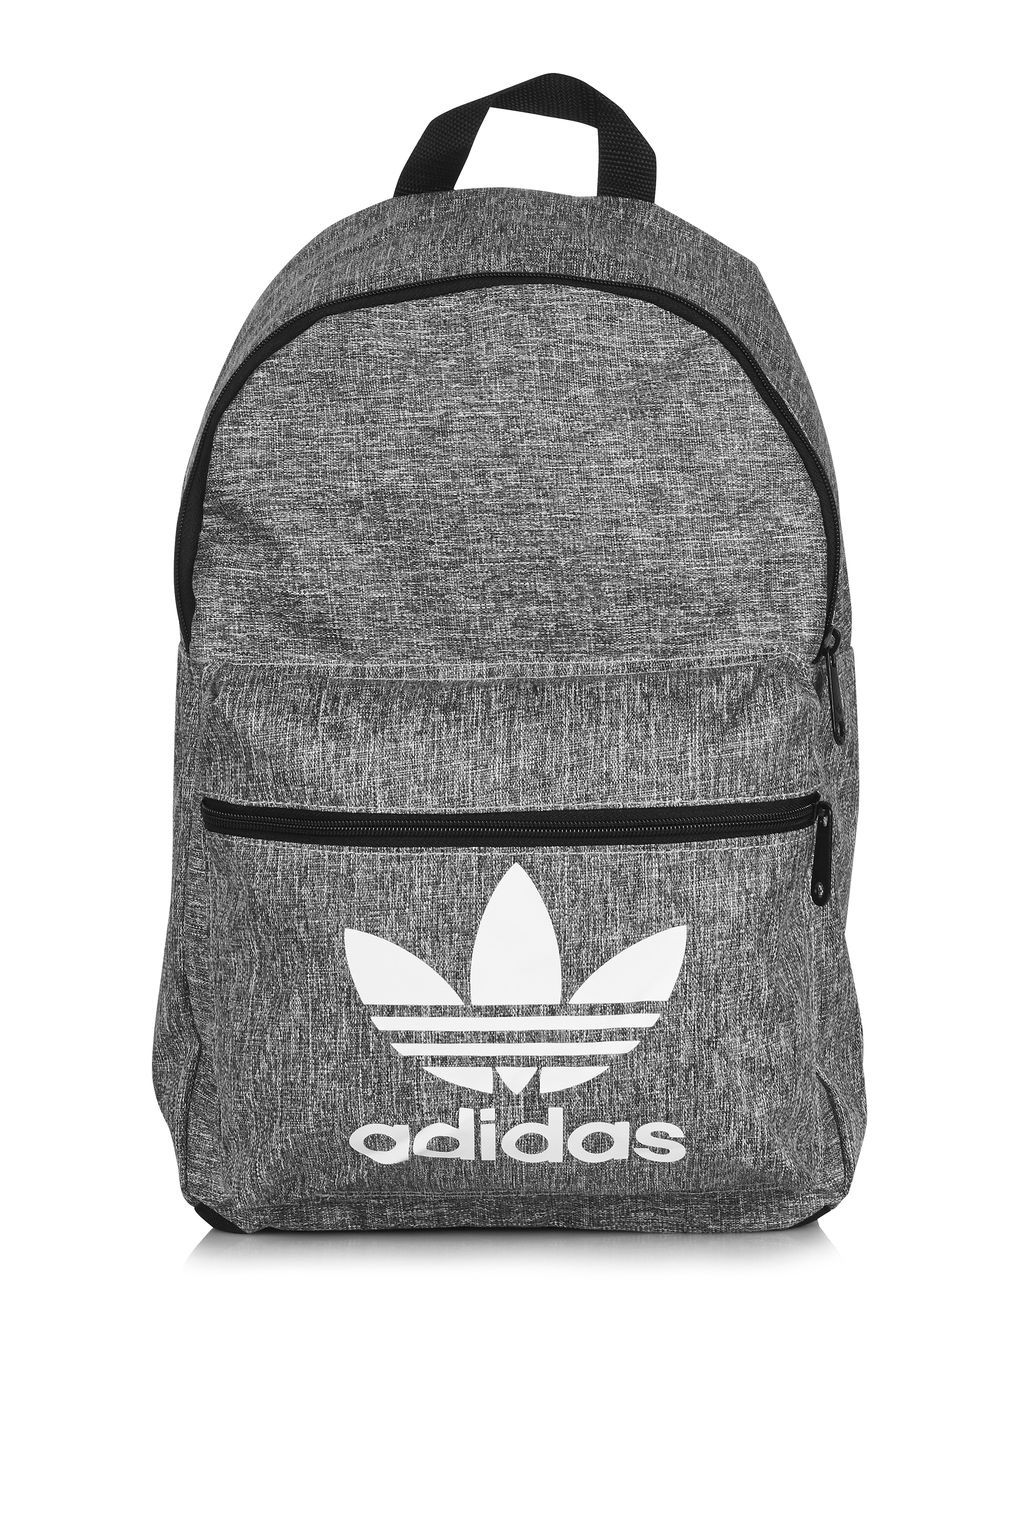 07f2afb3aa22 Grey Backpack by Adidas Originals in 2019